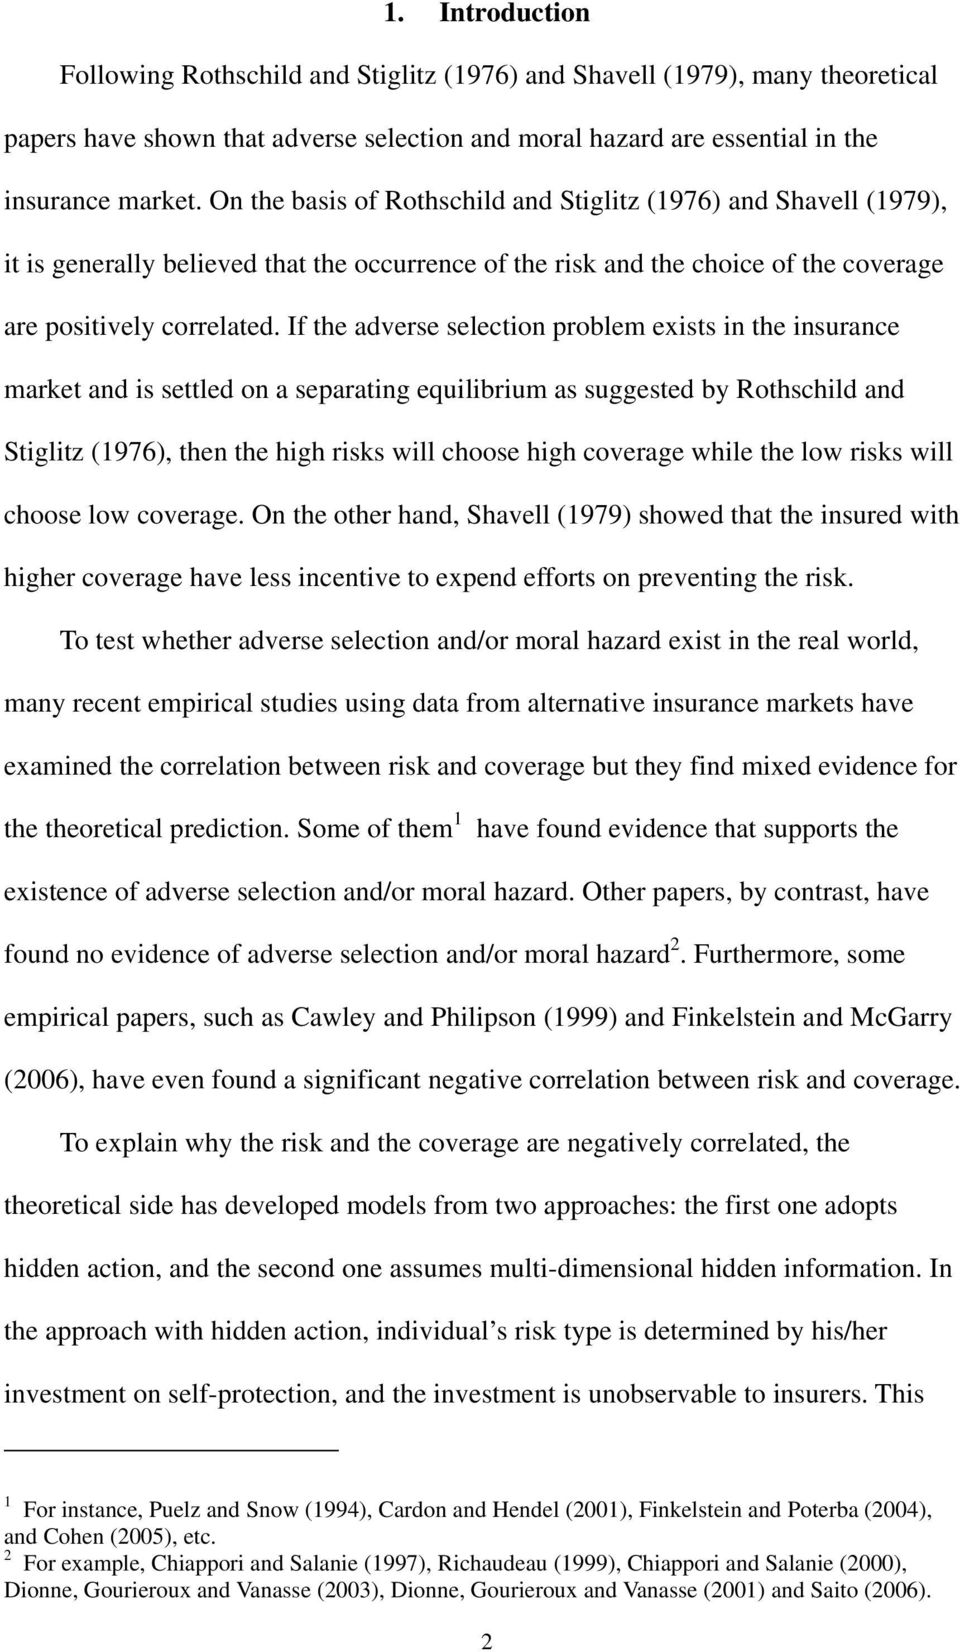 If the adverse selection problem exists in the insurance market and is settled on a separating equilibrium as suggested by Rothschild and Stiglitz (1976), then the high risks will choose high